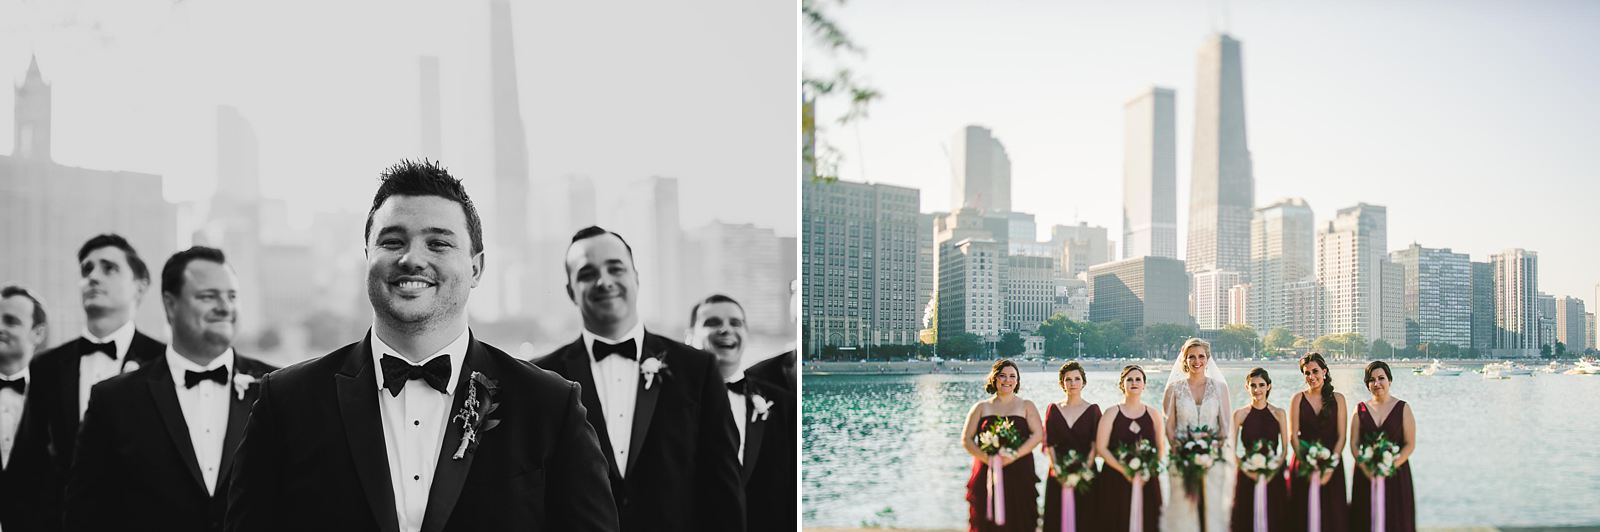 40 bridal party photos at olive park - Chicago Drake Hotel Wedding // Corie + Jordan